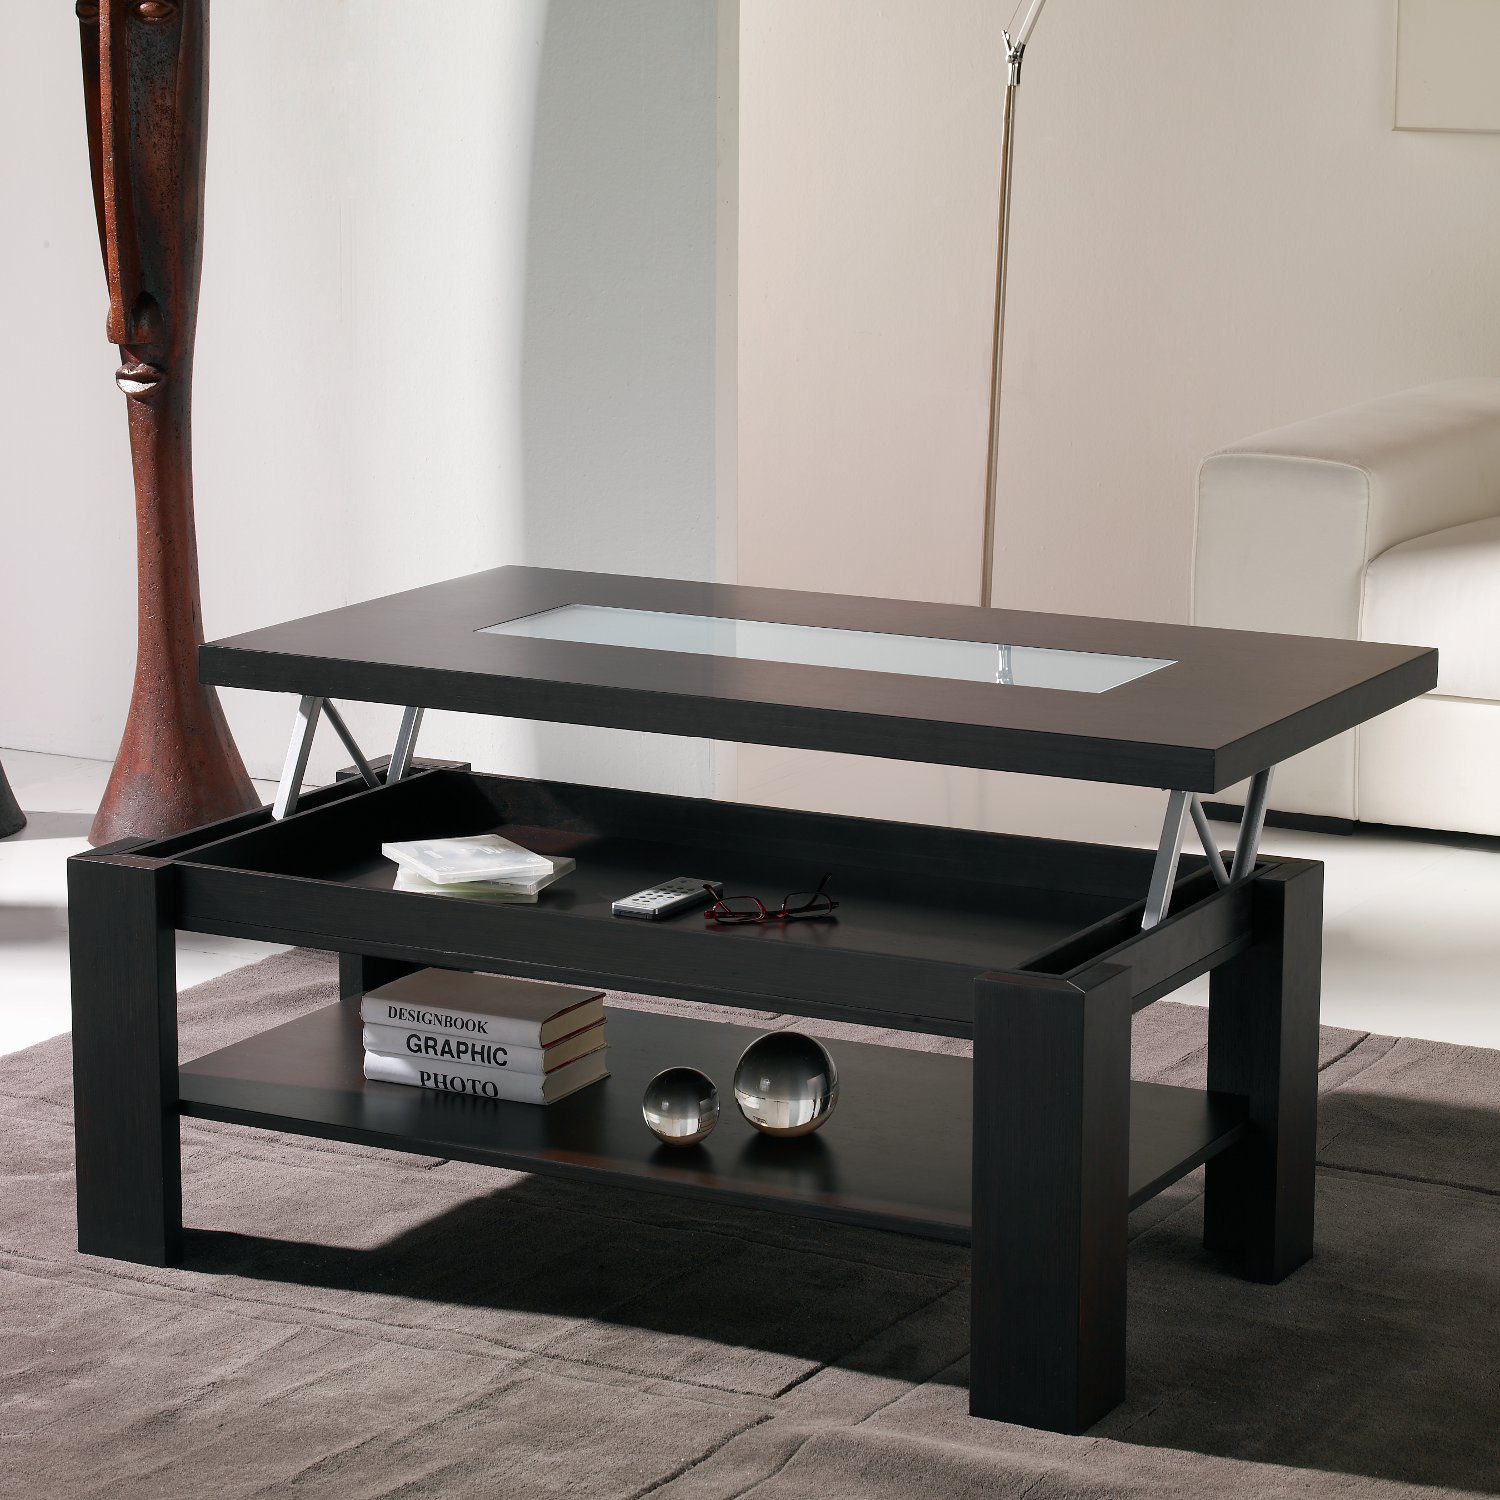 La table basse relevable r volutionne le salon d co et saveurs - Table basse relevable but ...